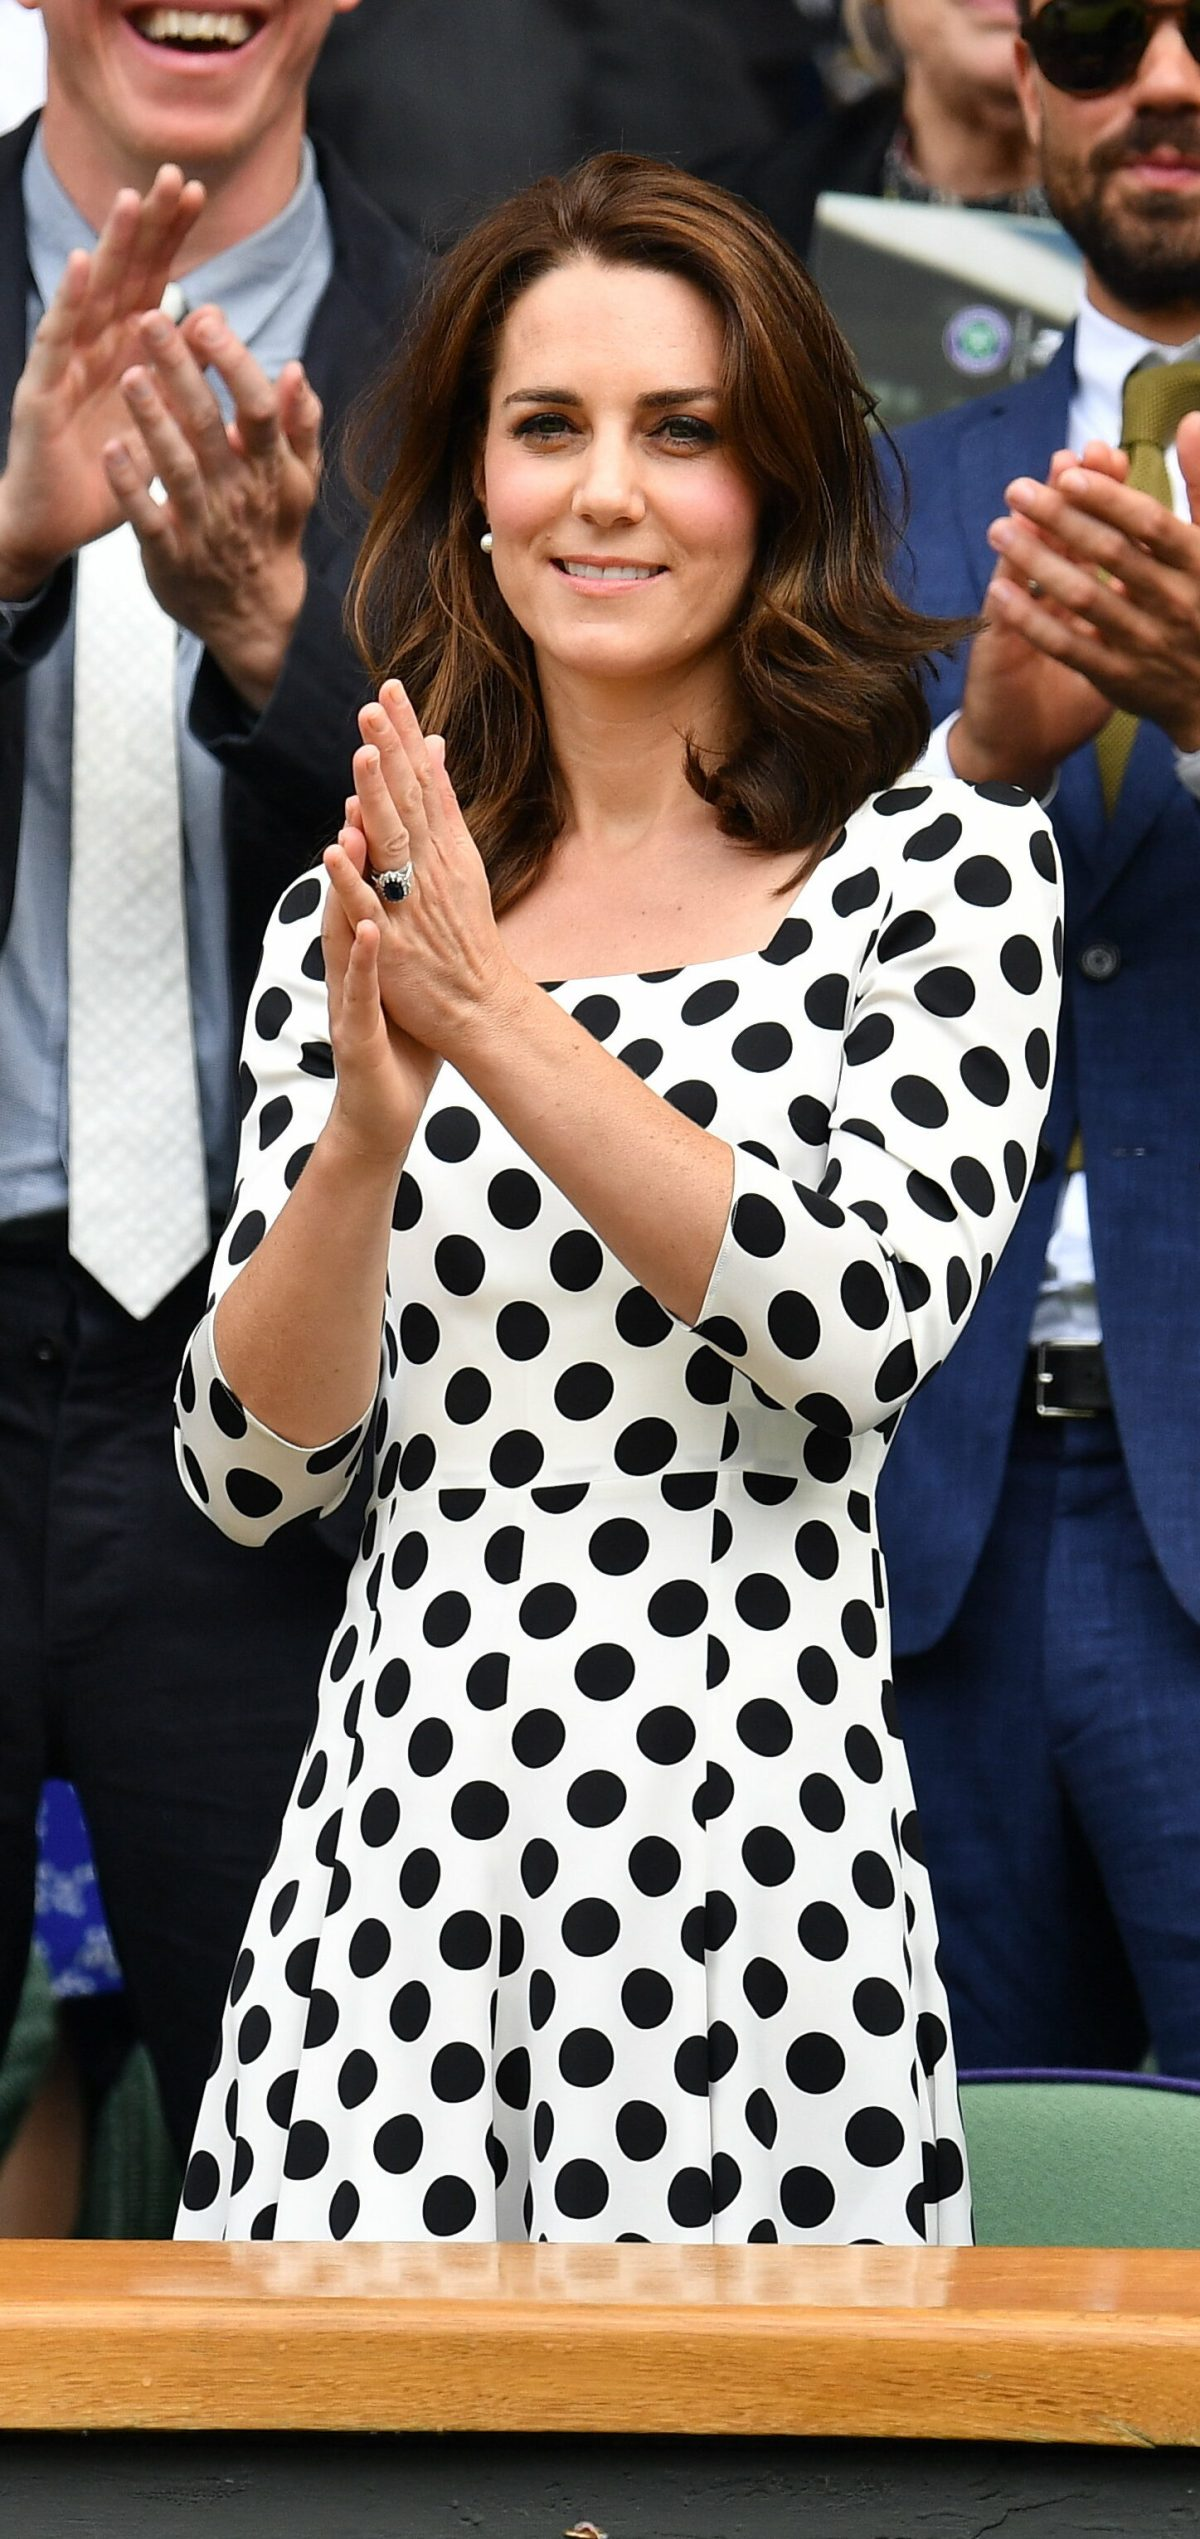 D&G polka dot dress